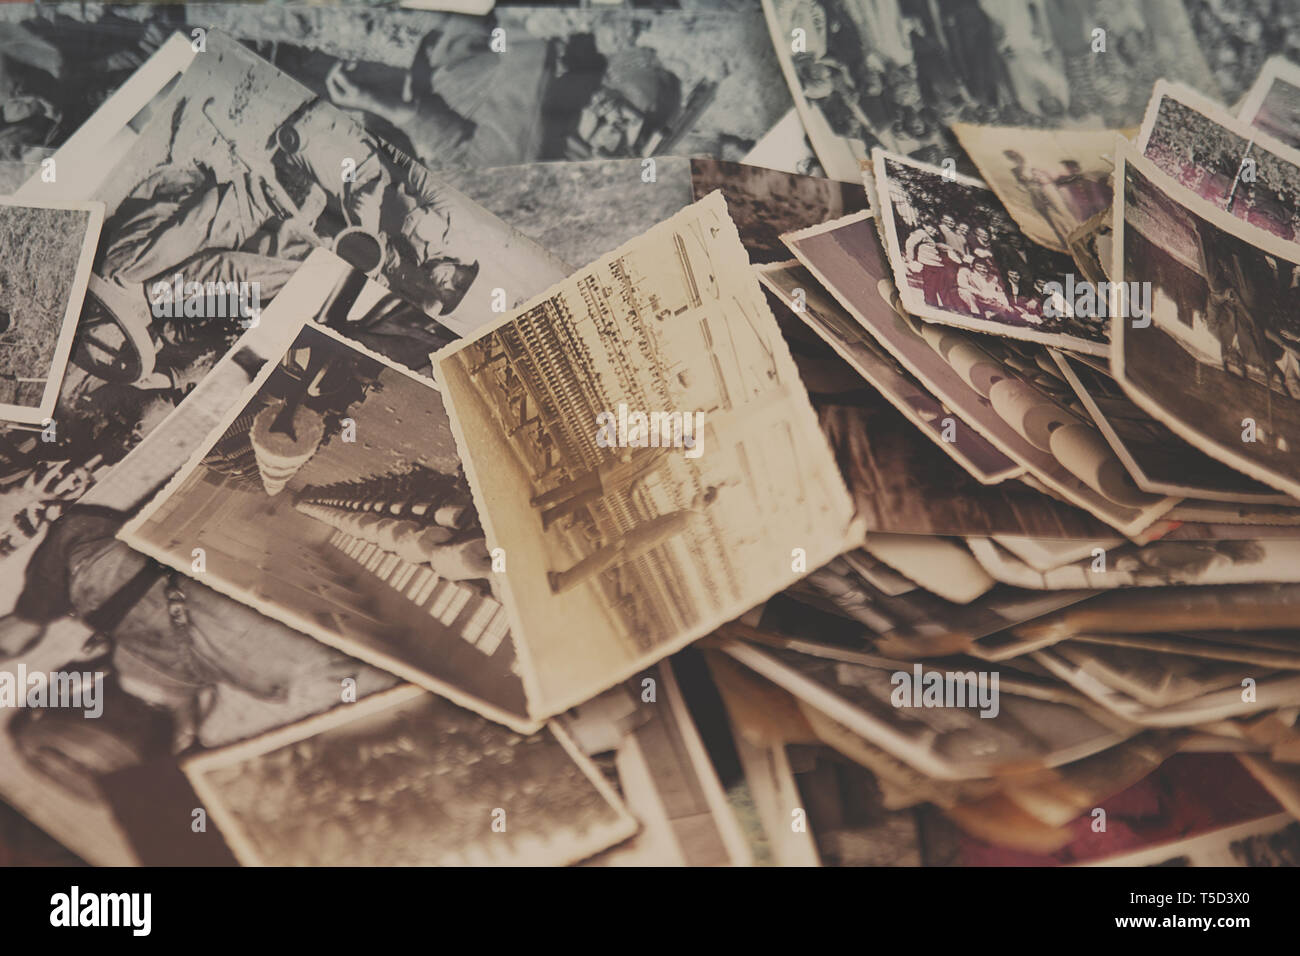 Old analog photos in Tirana market, Albania - Stock Image